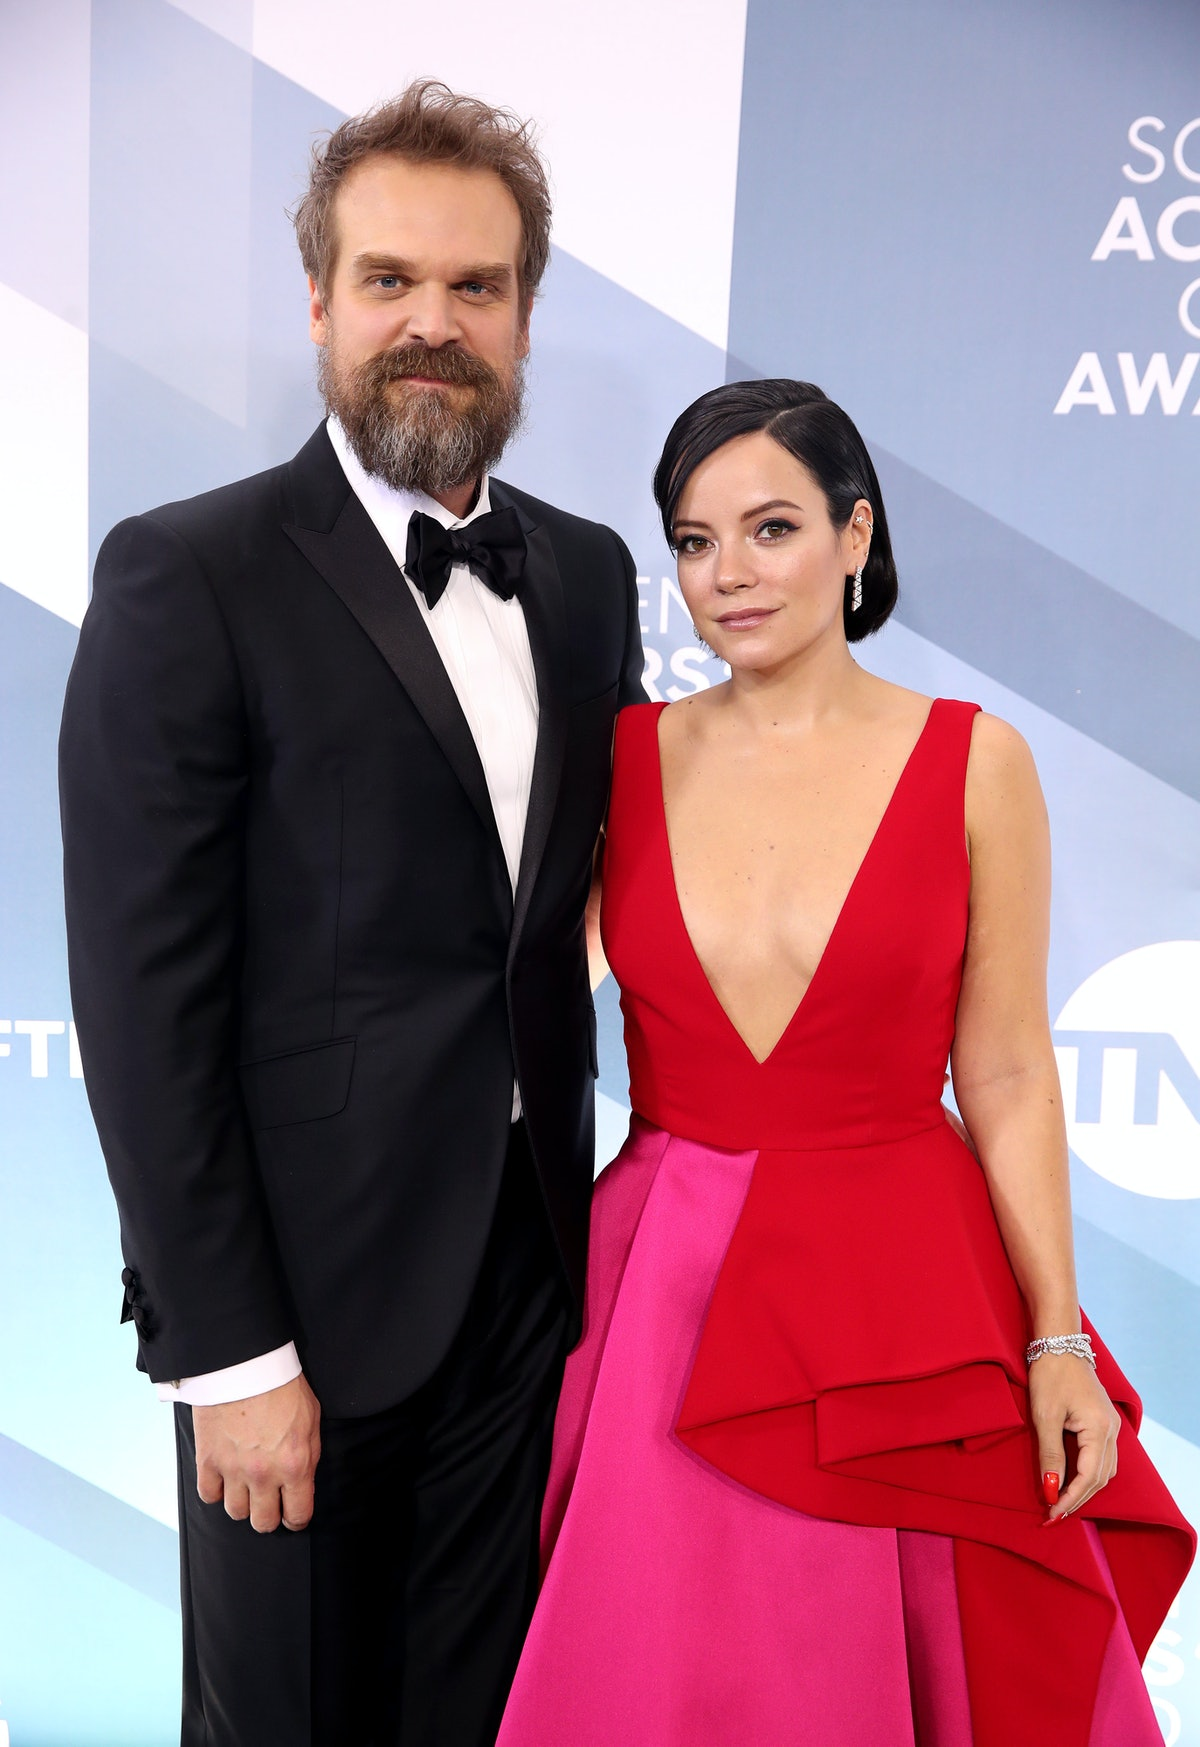 Lily Allen and David Harbour's astrological compatibility isn't ideal